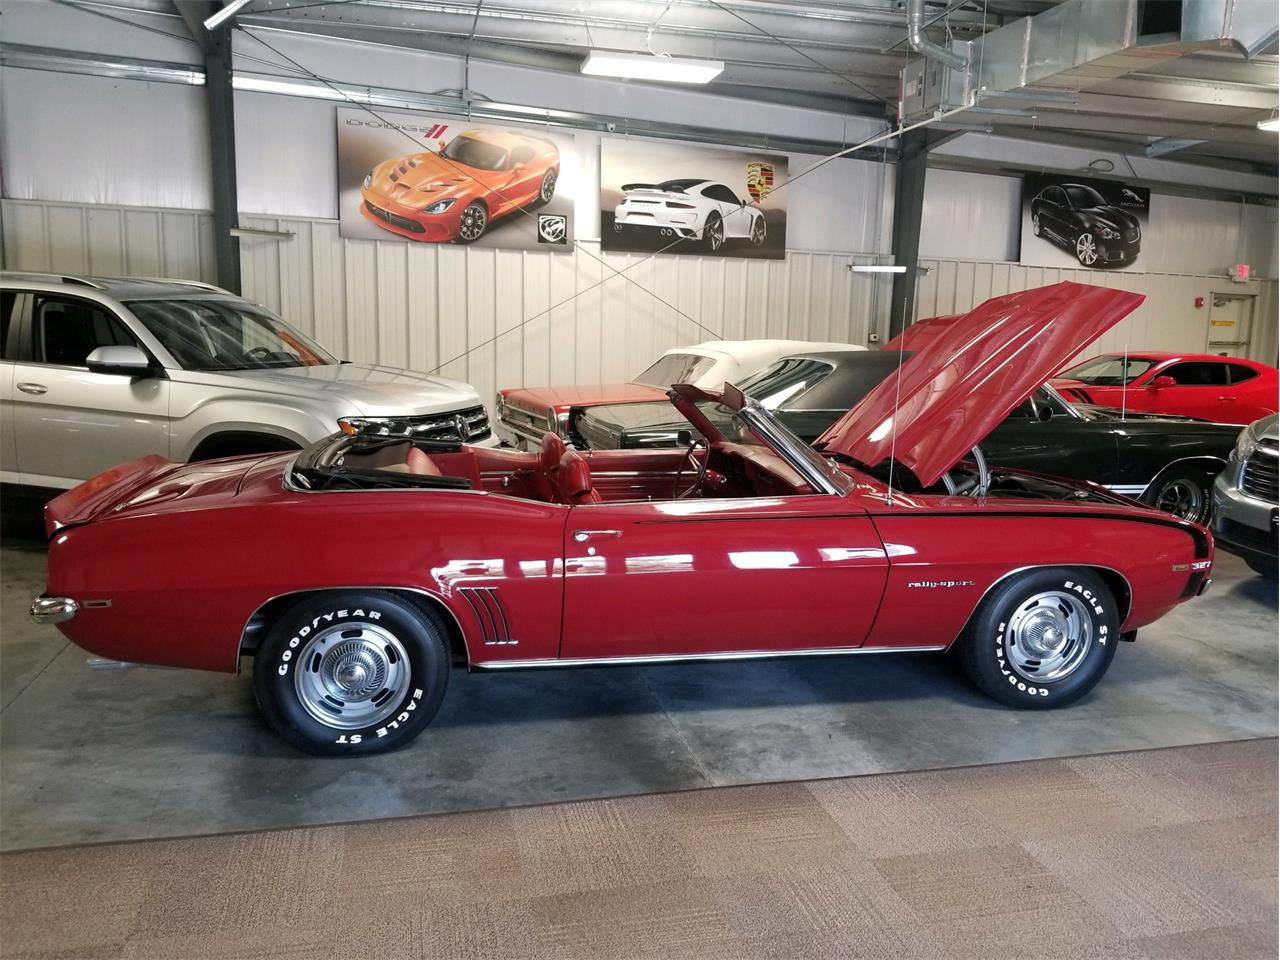 Large Picture of Classic 1969 Chevrolet Camaro RS located in Nebraska - $48,990.00 Offered by a Private Seller - QLXI